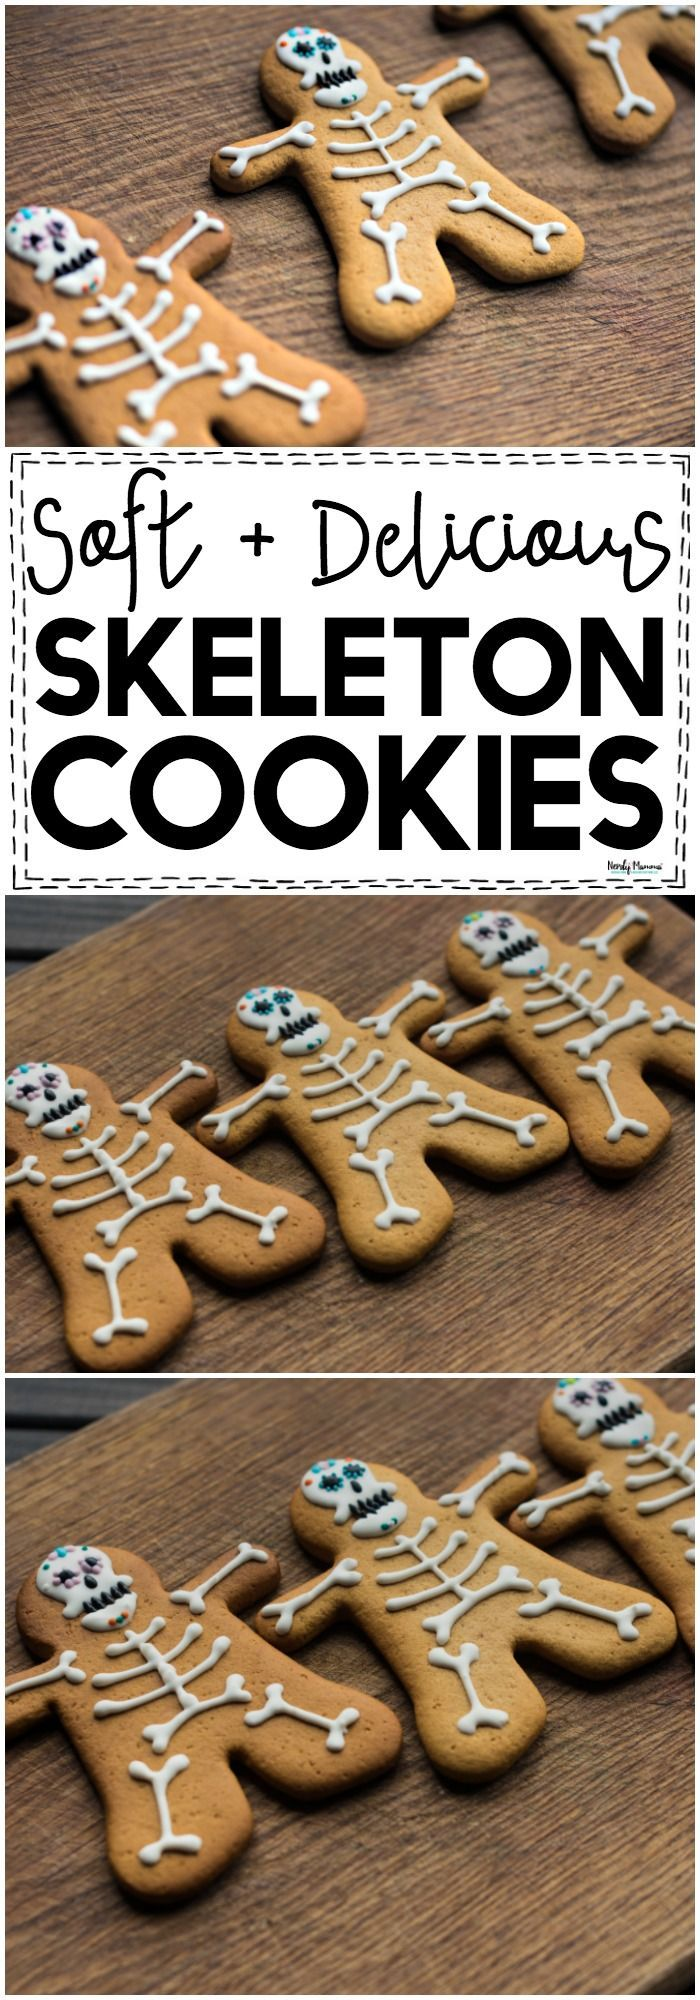 Ridiculously Soft & Delicious Skeleton Cookies! #gingerbread #skeleton #halloween